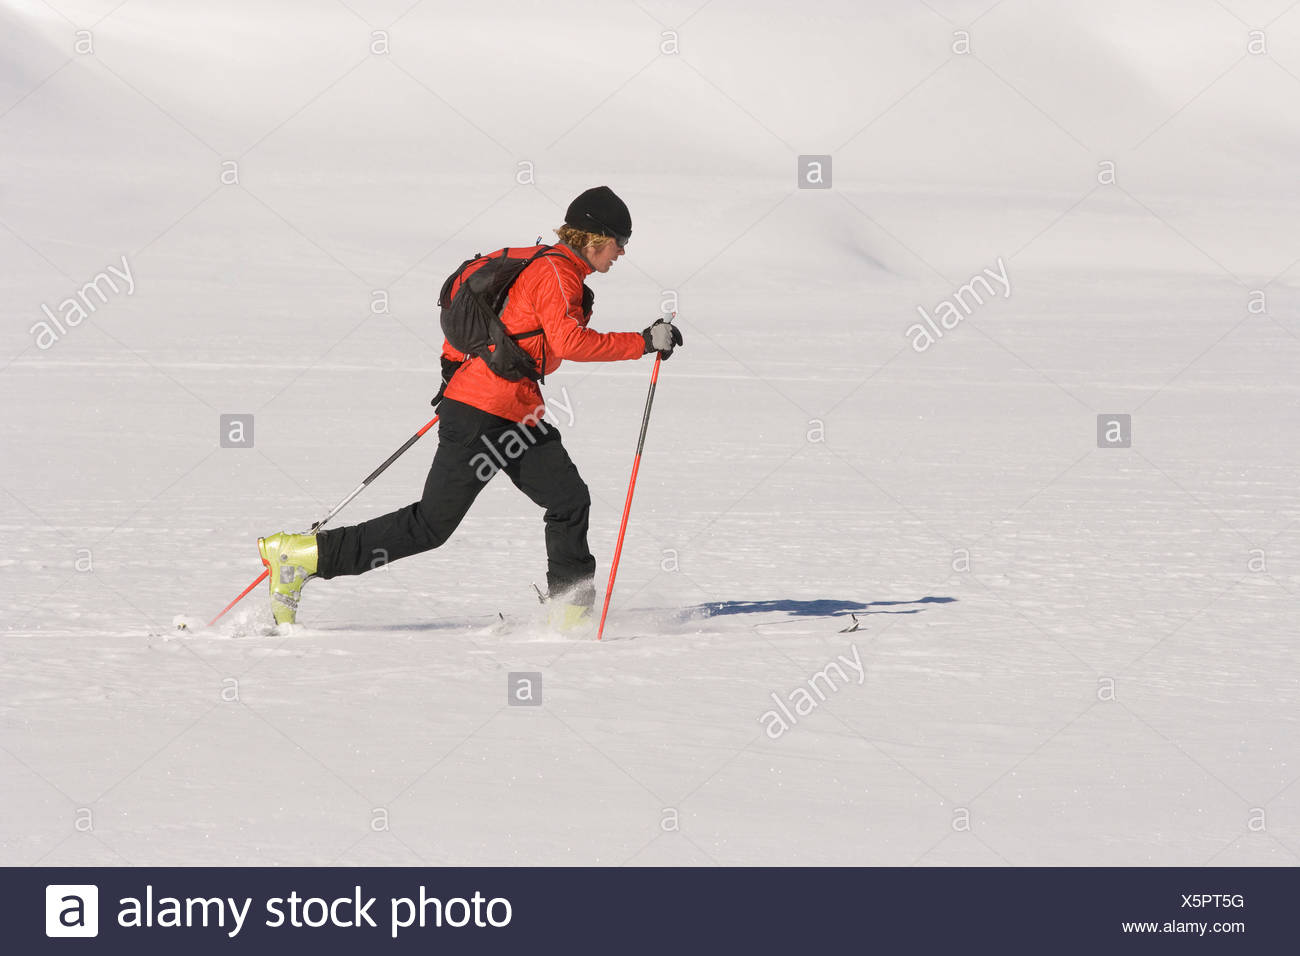 A skier alpine touring in Colorado. - Stock Image